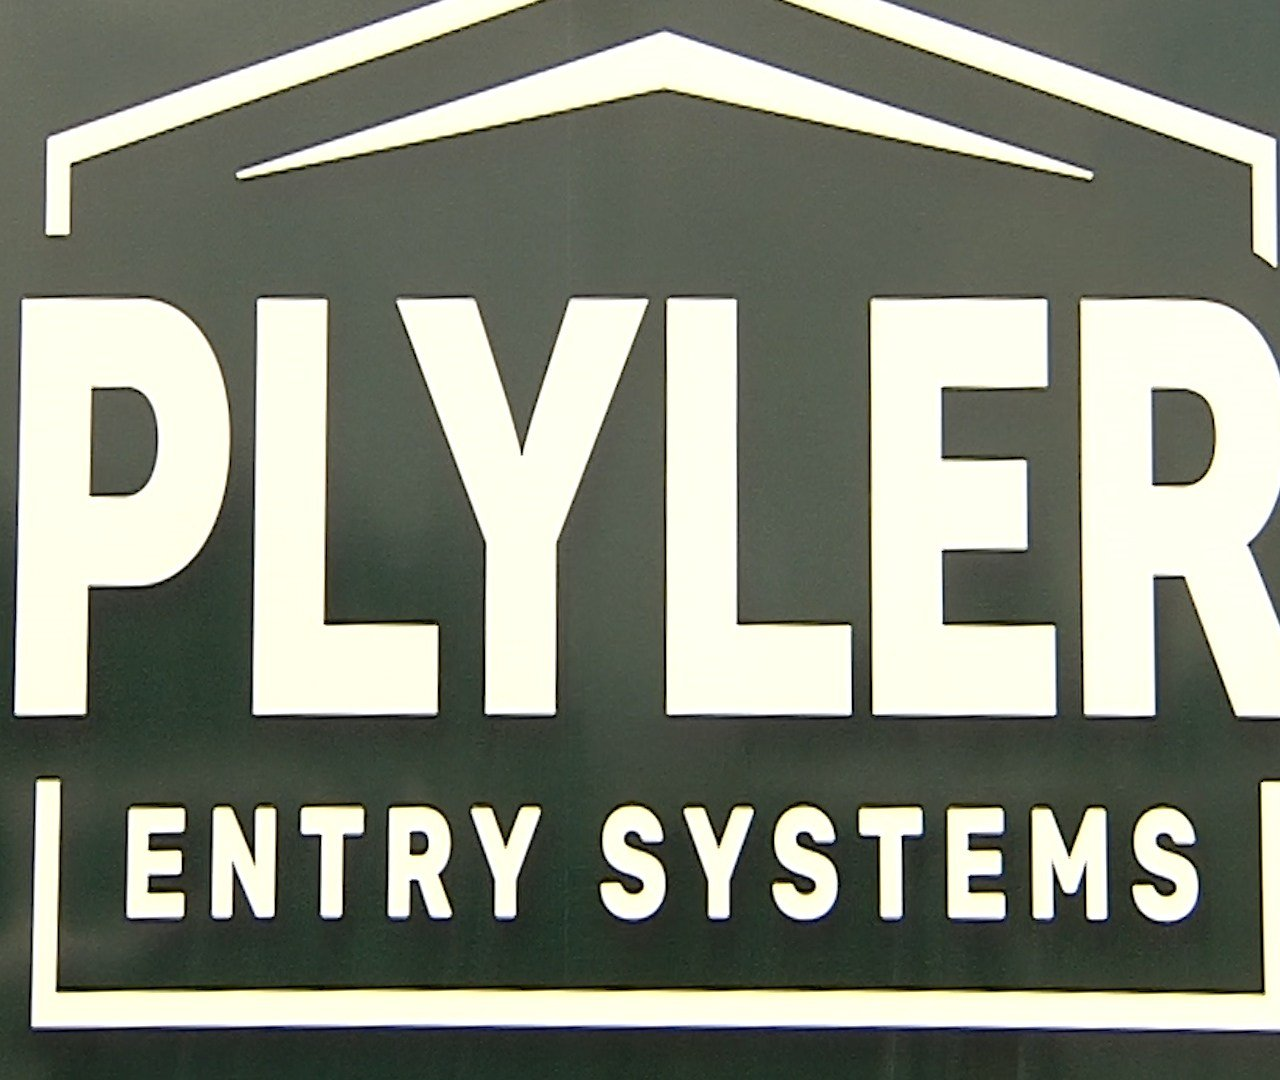 Plyler Entry Systems Giving You The Business Erie News Now Wicu And Wsee In Pa